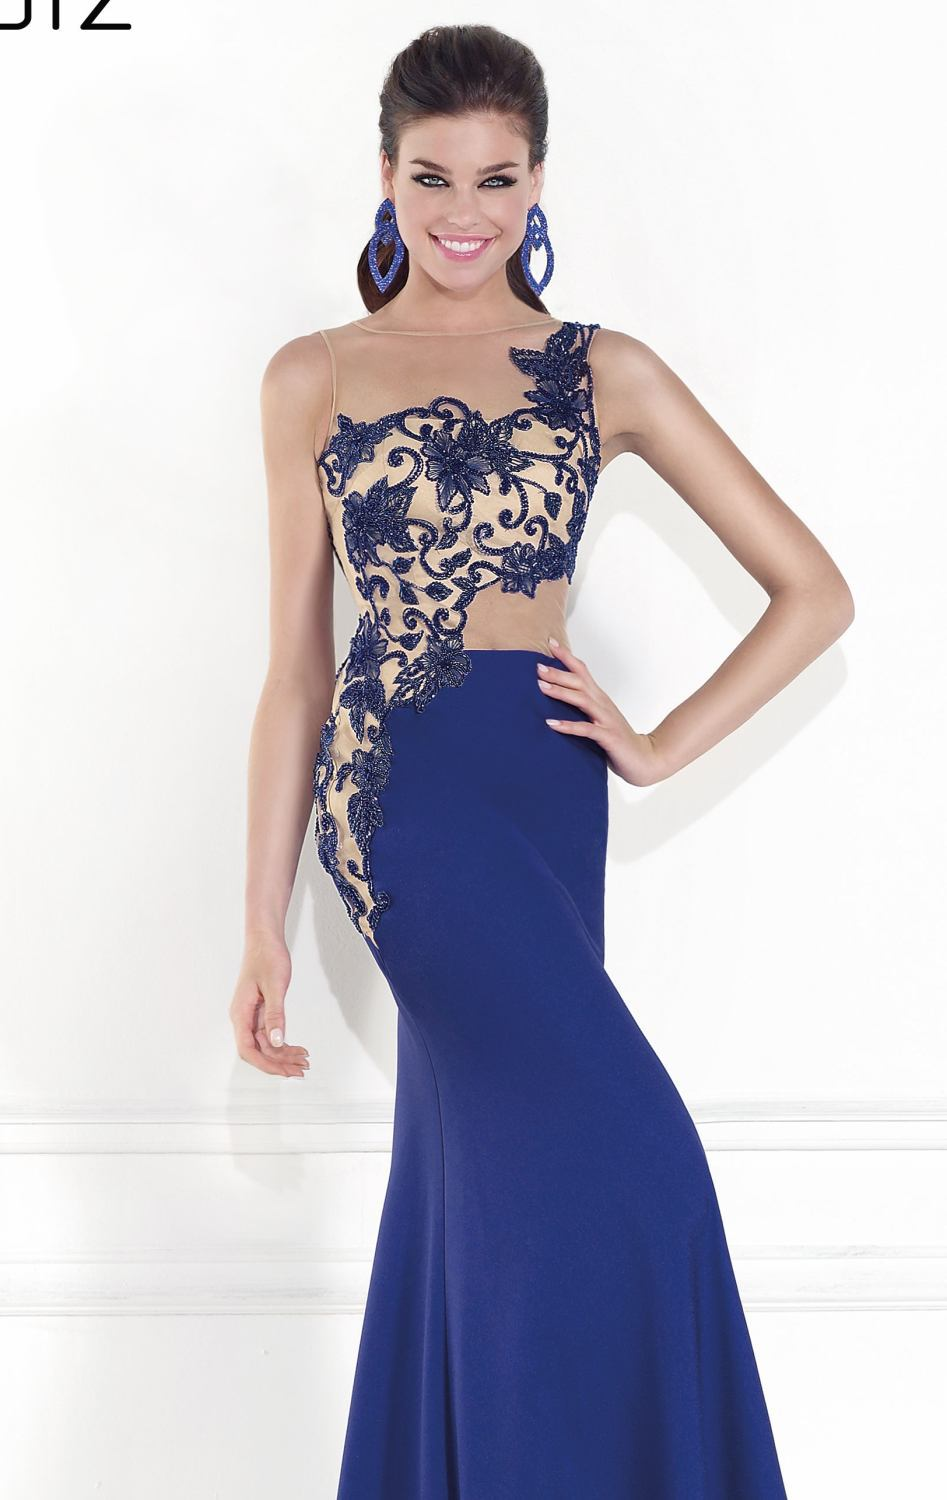 Remarkable Evening Gown Fitted Bodice Stunning Sheer Beading Royal Blue  Evening Dress Mermaid Long -in Evening Dresses from Weddings   Events on ... cec44d7fd87f